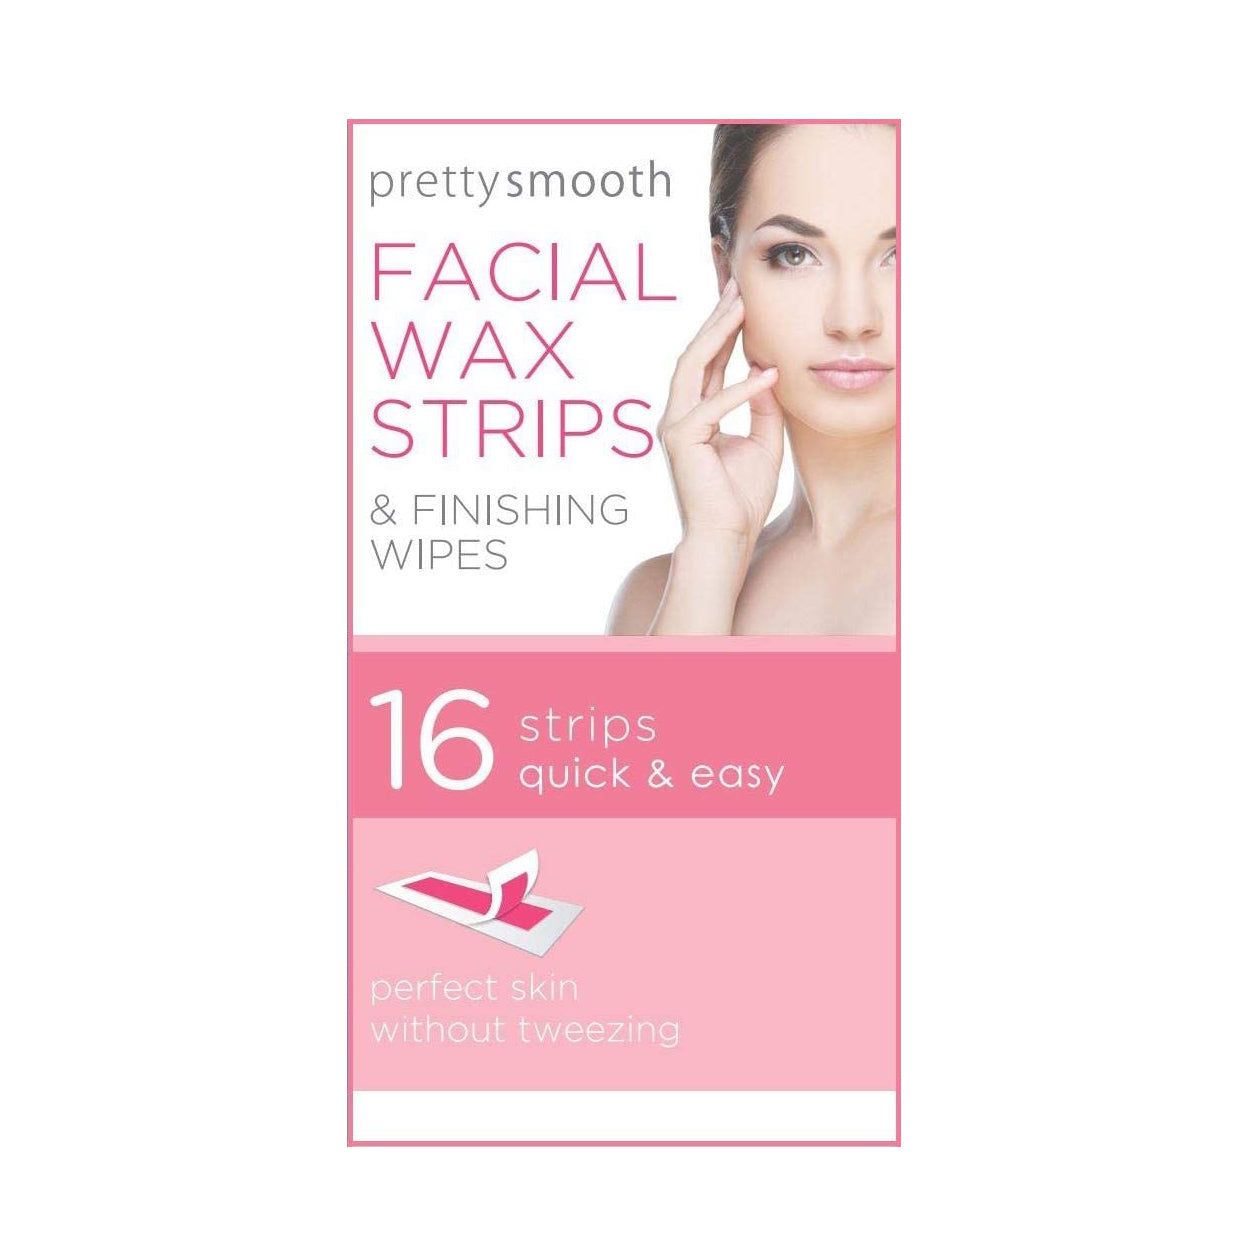 Pretty Smooth Facial Wax Stips